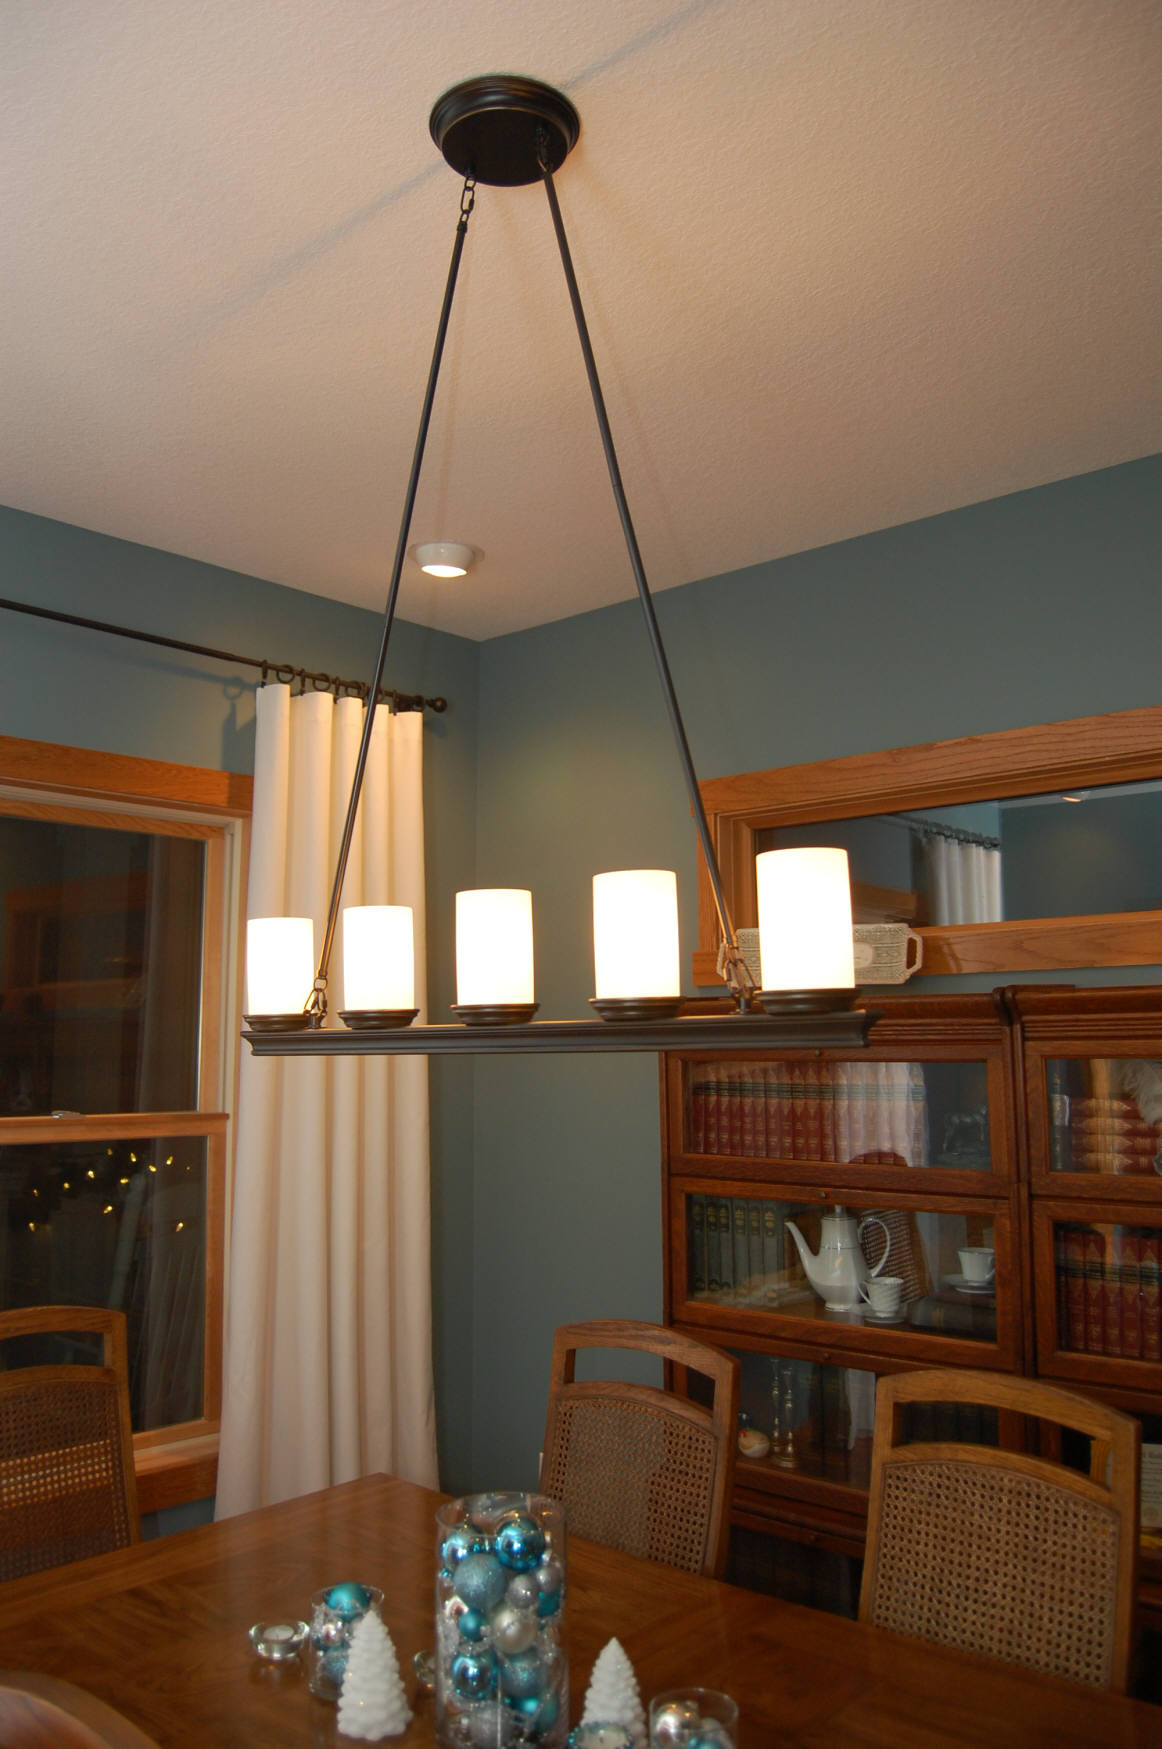 22 best images about kitchen light fixtures on pinterest allen roth dining room lighting and farmhouse table ideas